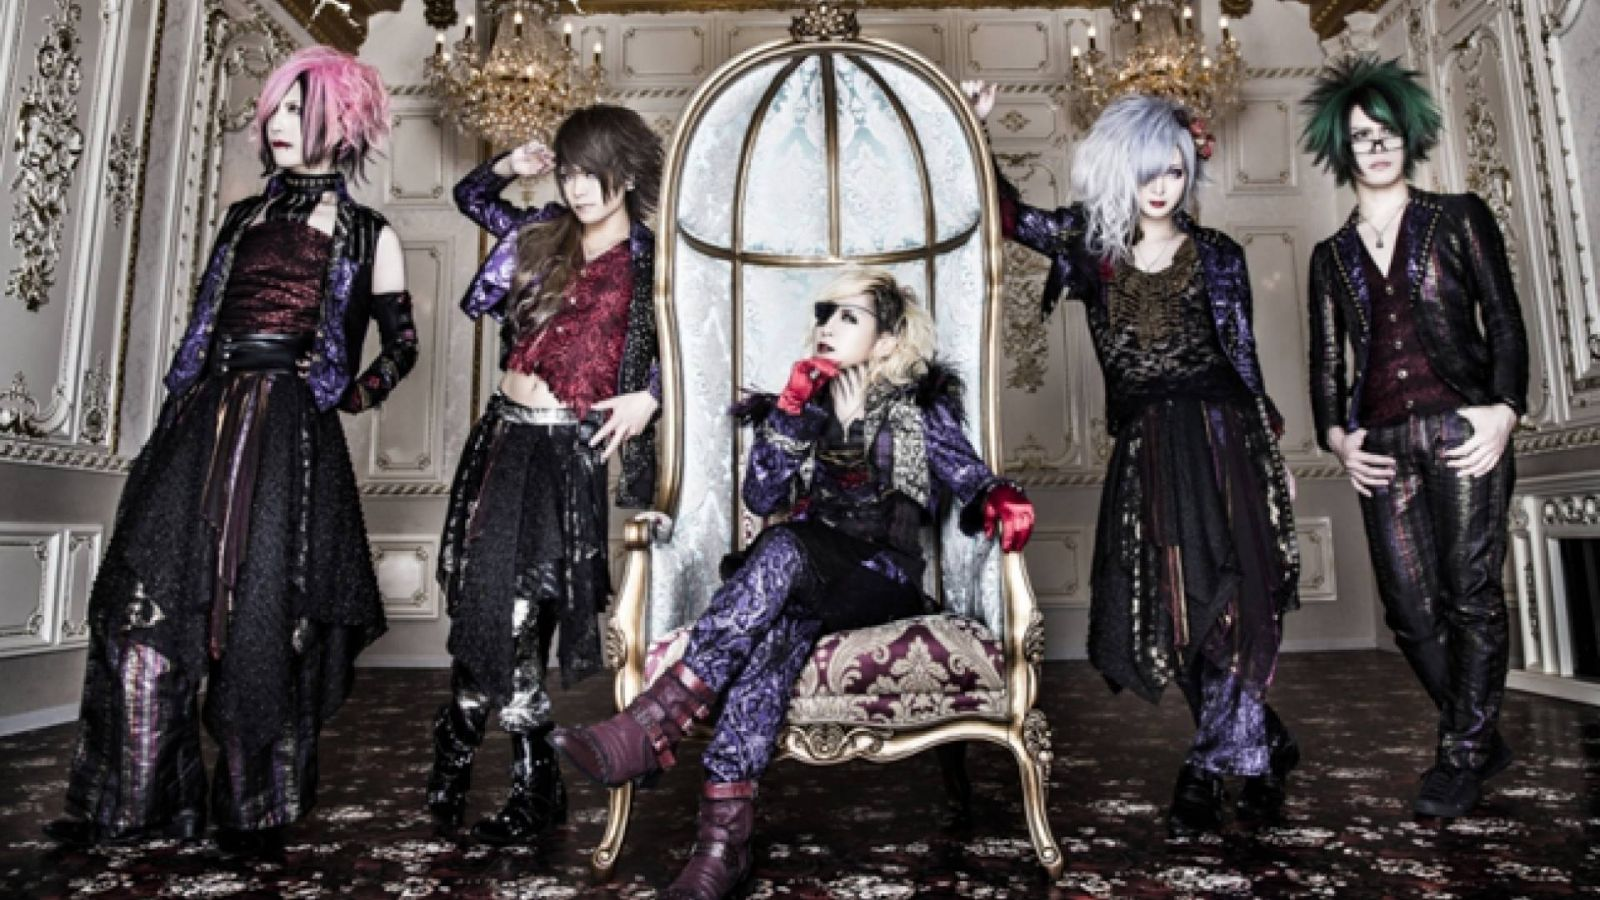 Nouveau maxi single d'Avanchick © Avanchick / ROCKSTAR RECORDS. All rights reserved.